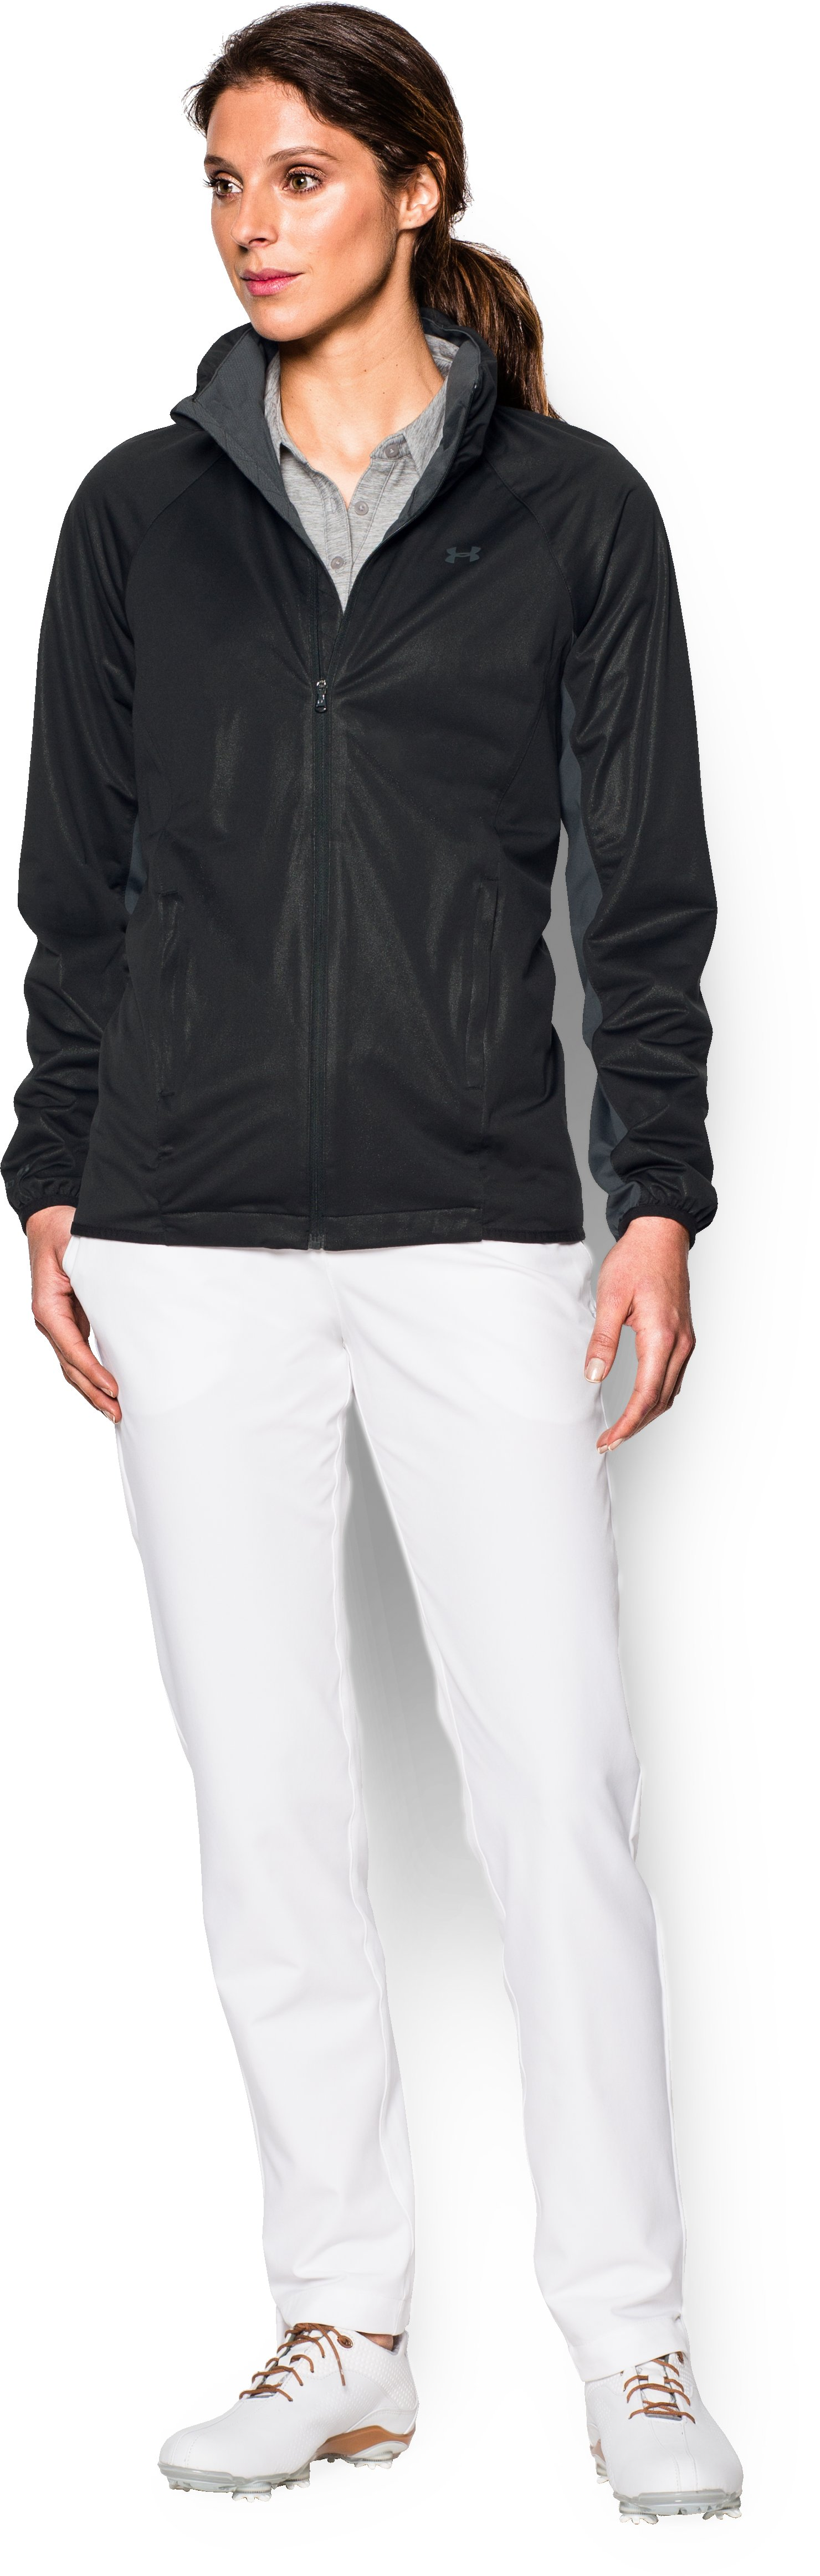 Womens golf jackets